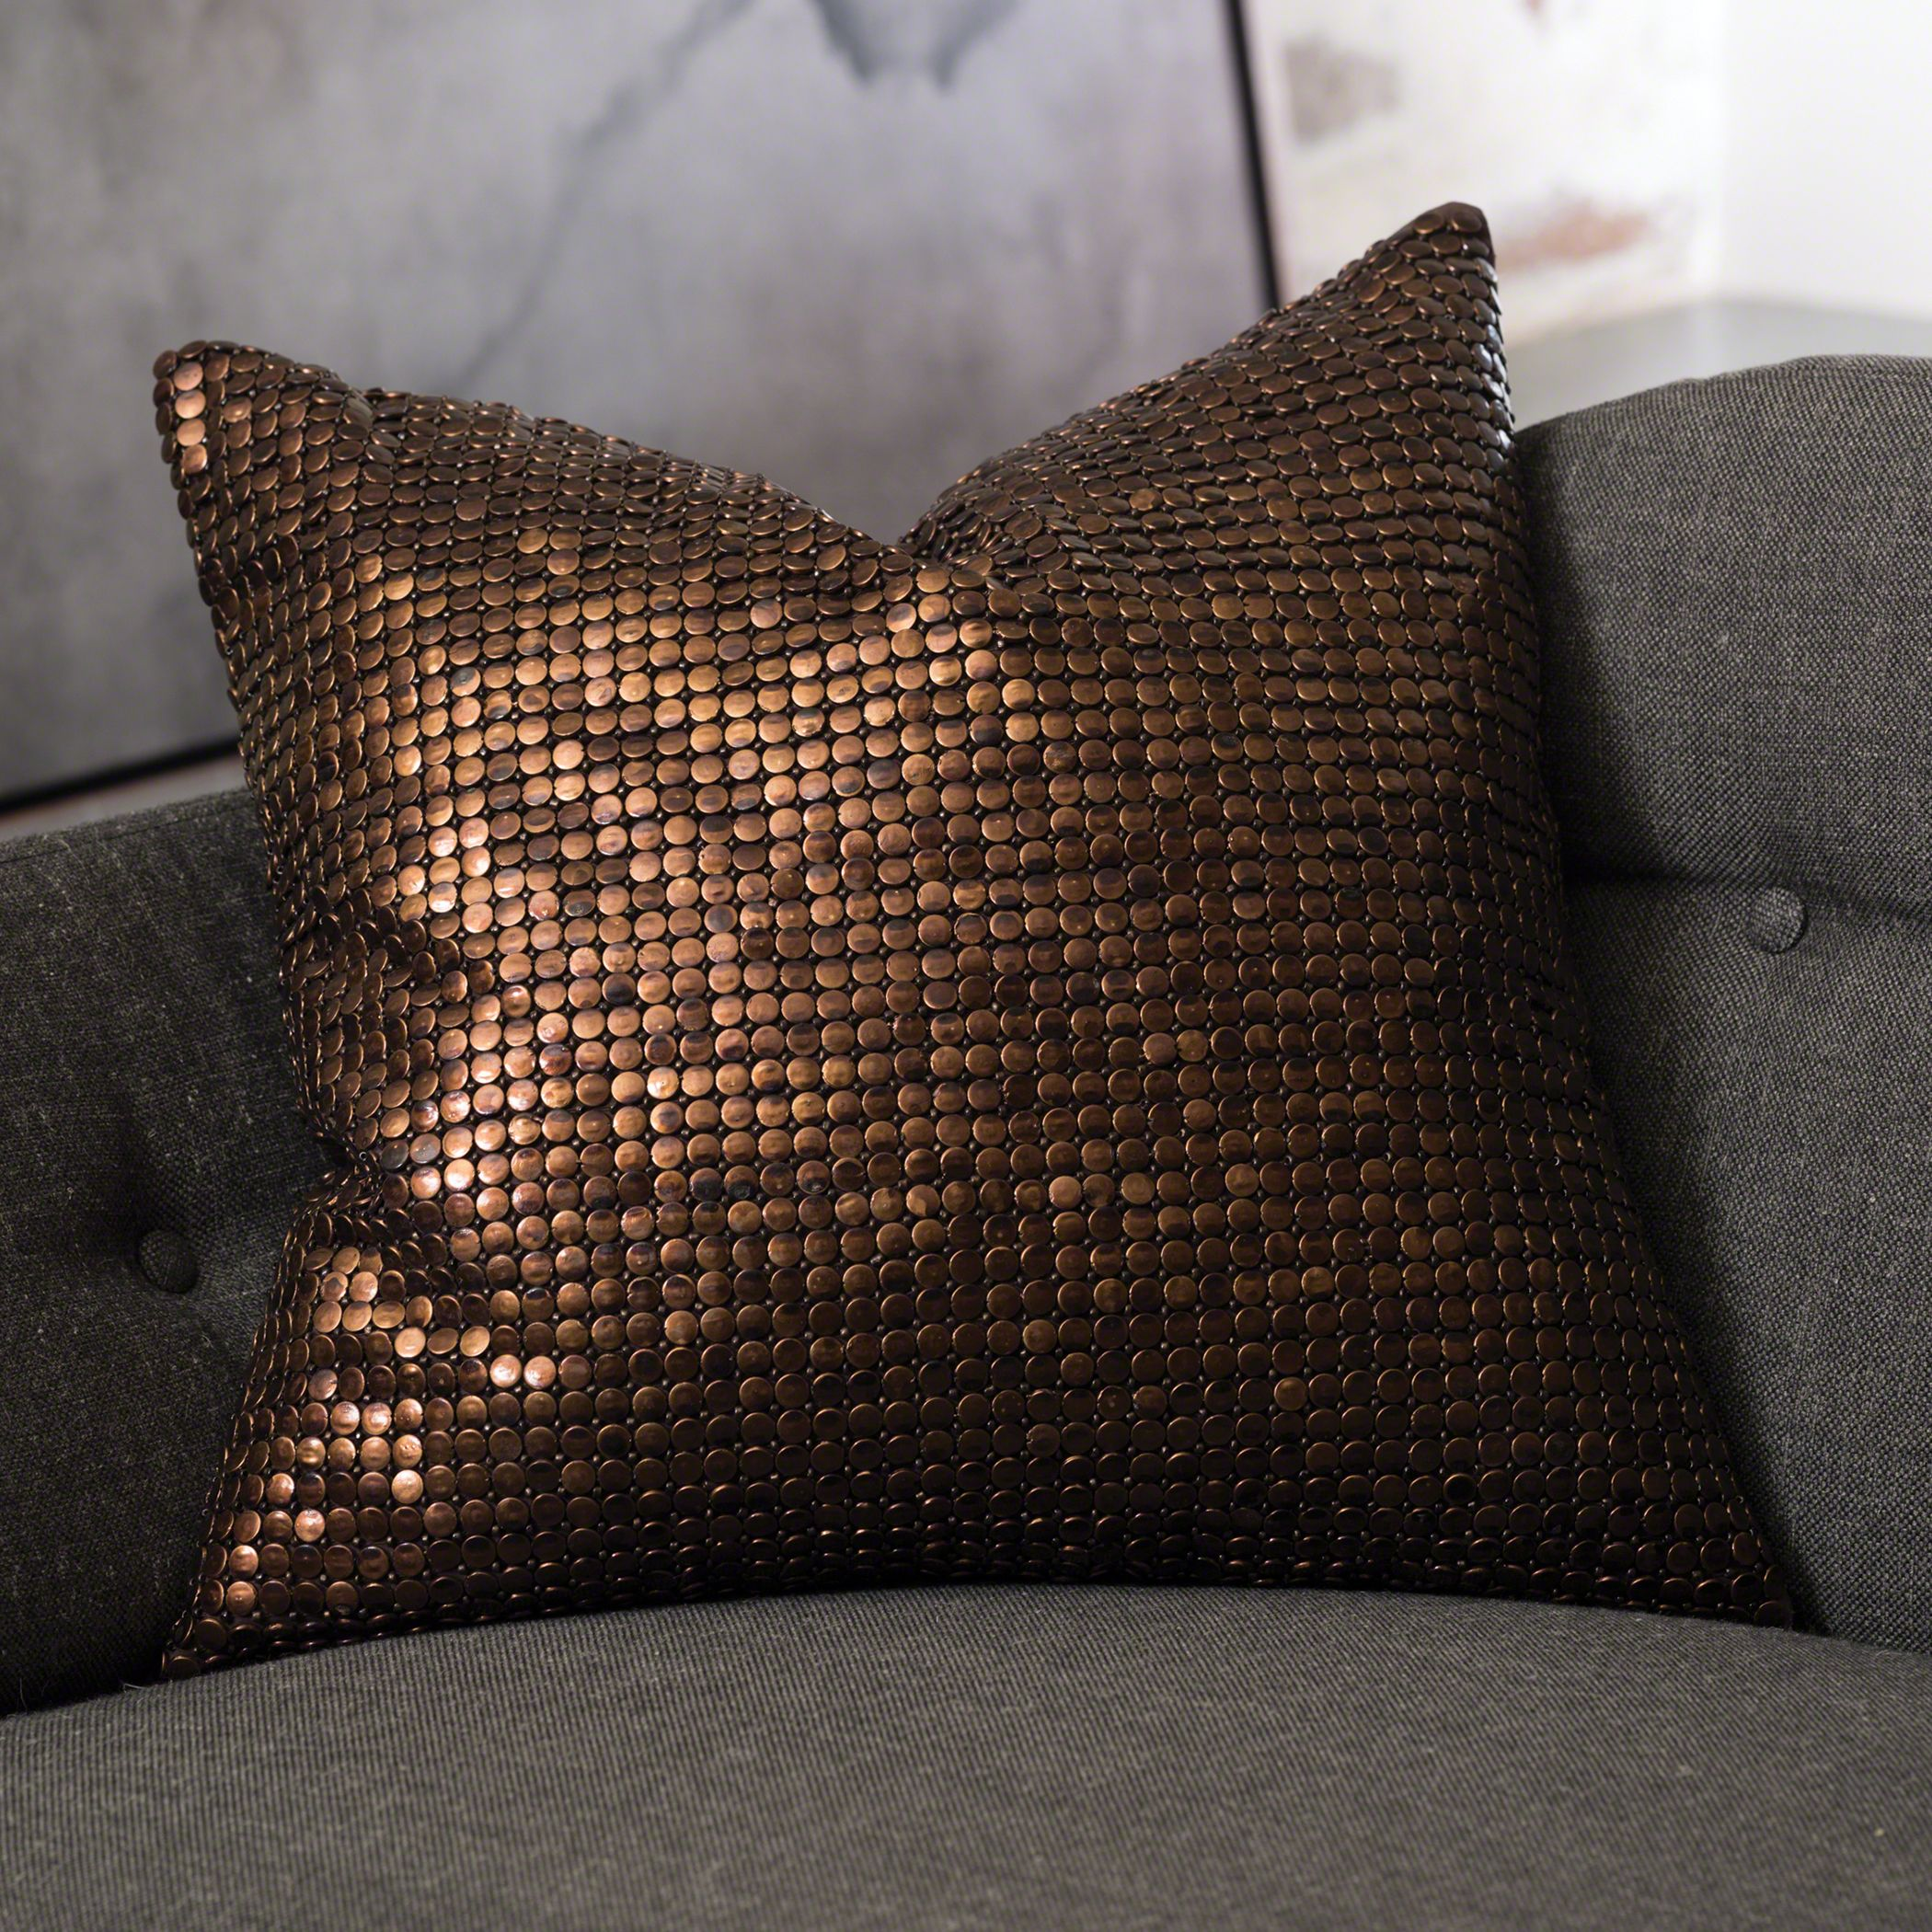 How To Wash Throw Pillows At Home